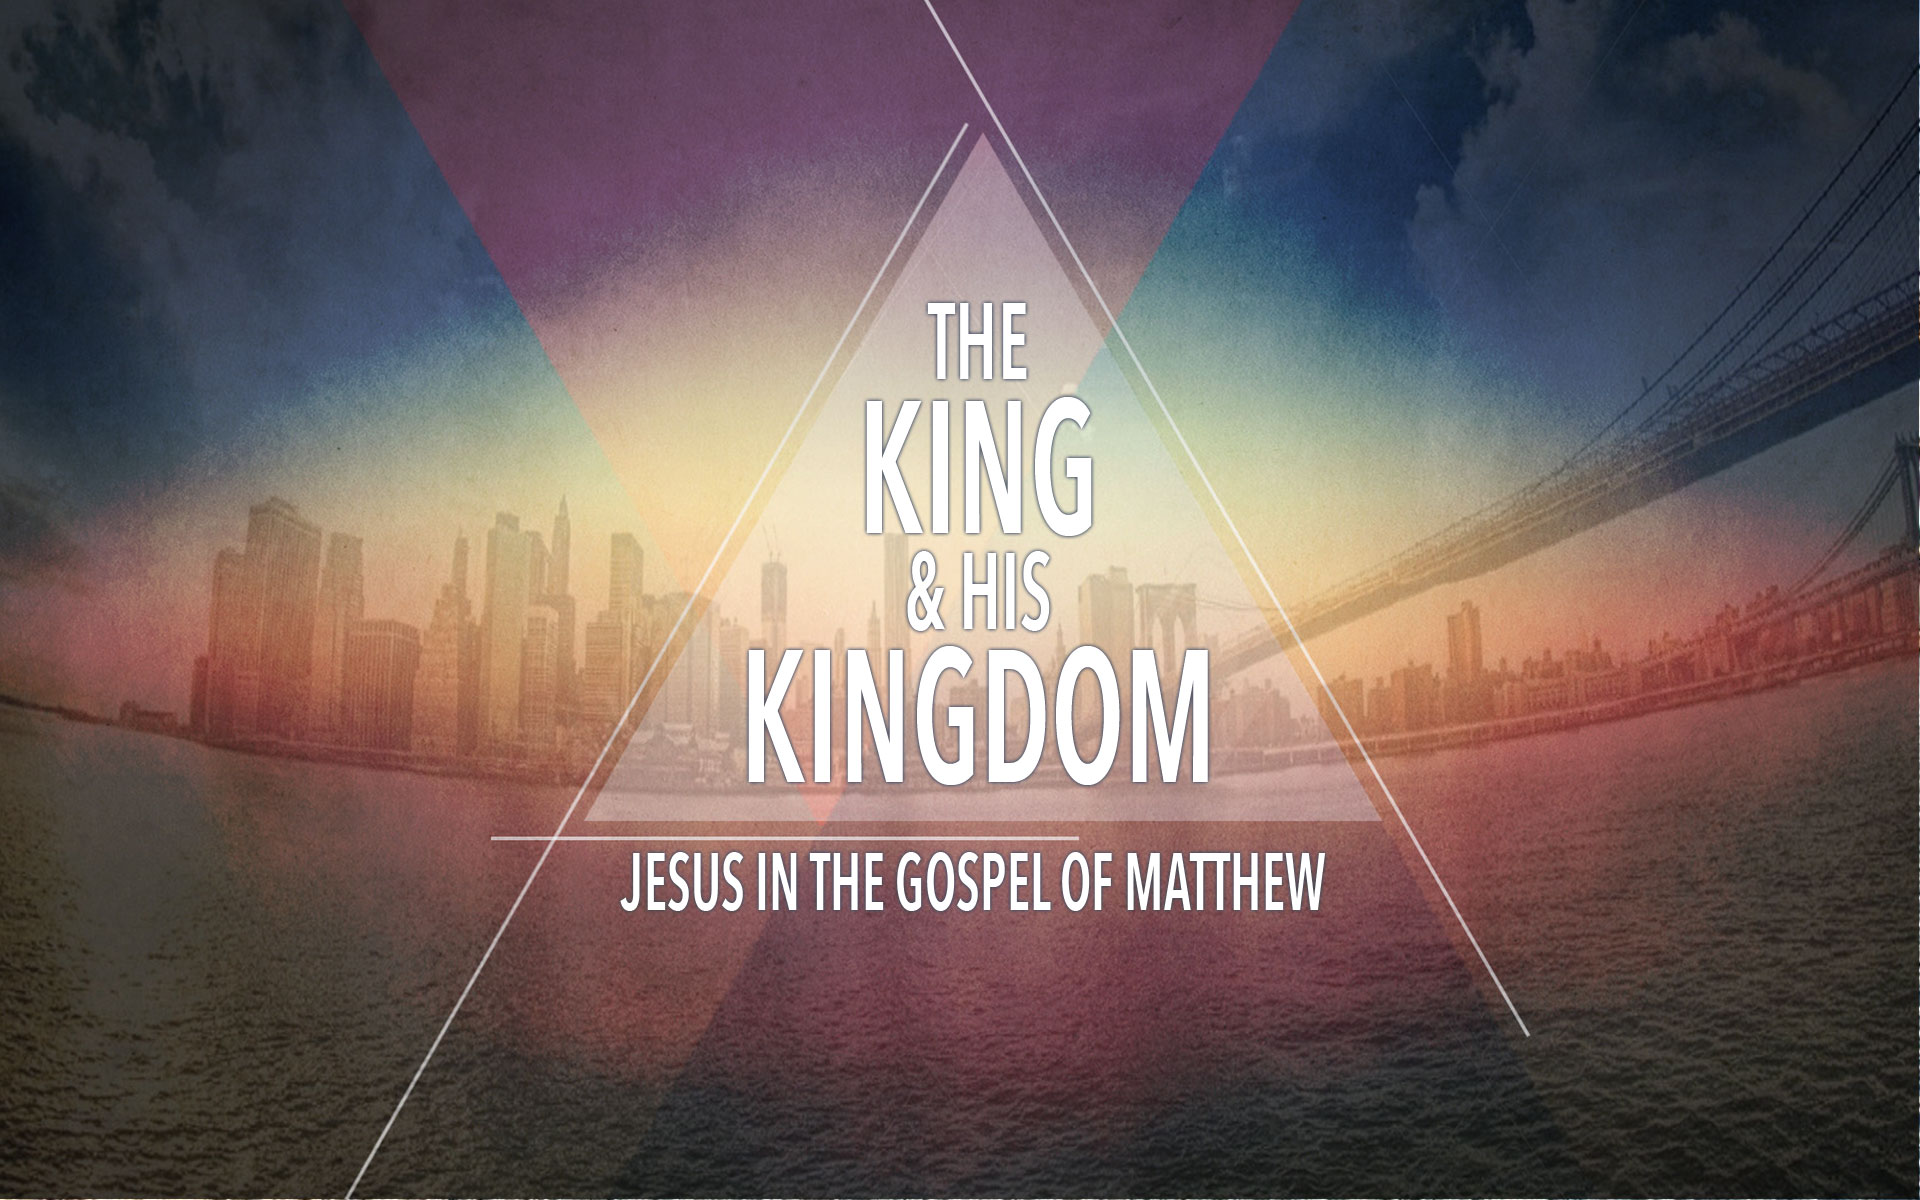 king&kingdomsermonimage.jpg